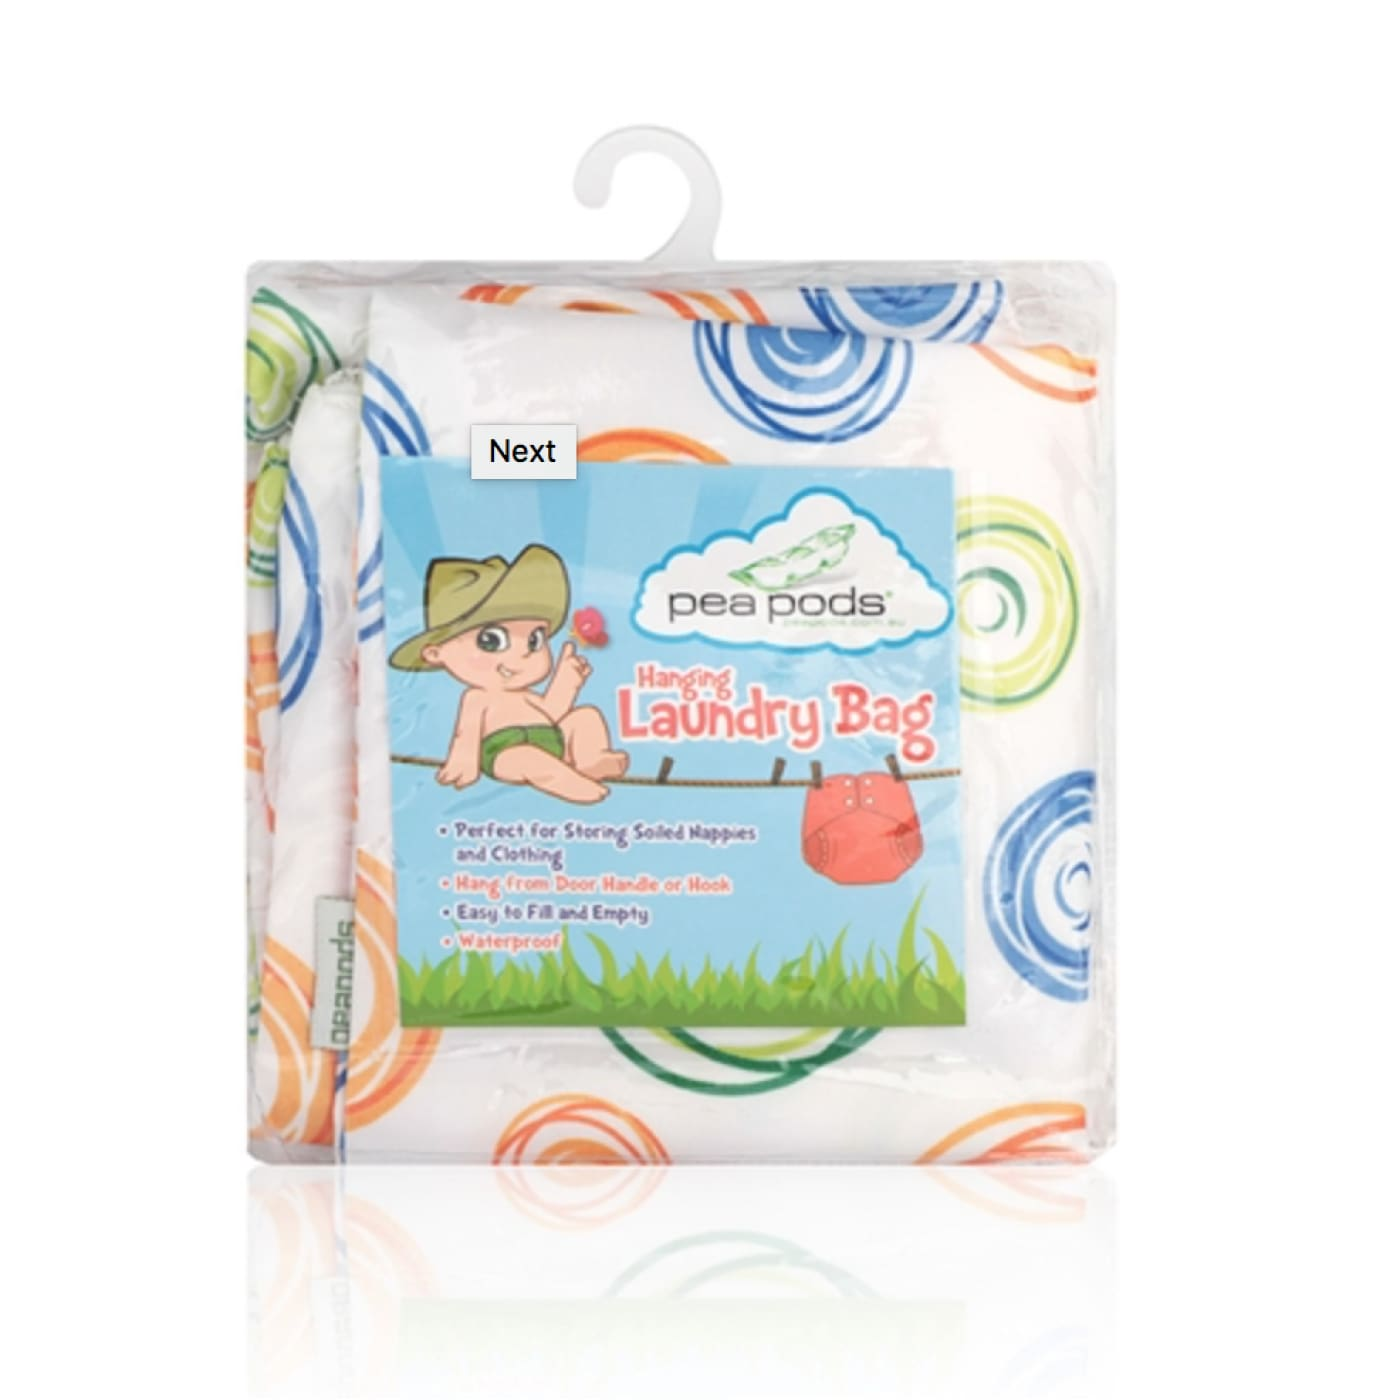 Pea Pods Laundry Bag - Swirl - BATHTIME & CHANGING - NAPPIES/WIPES/ACC ECO RANGE